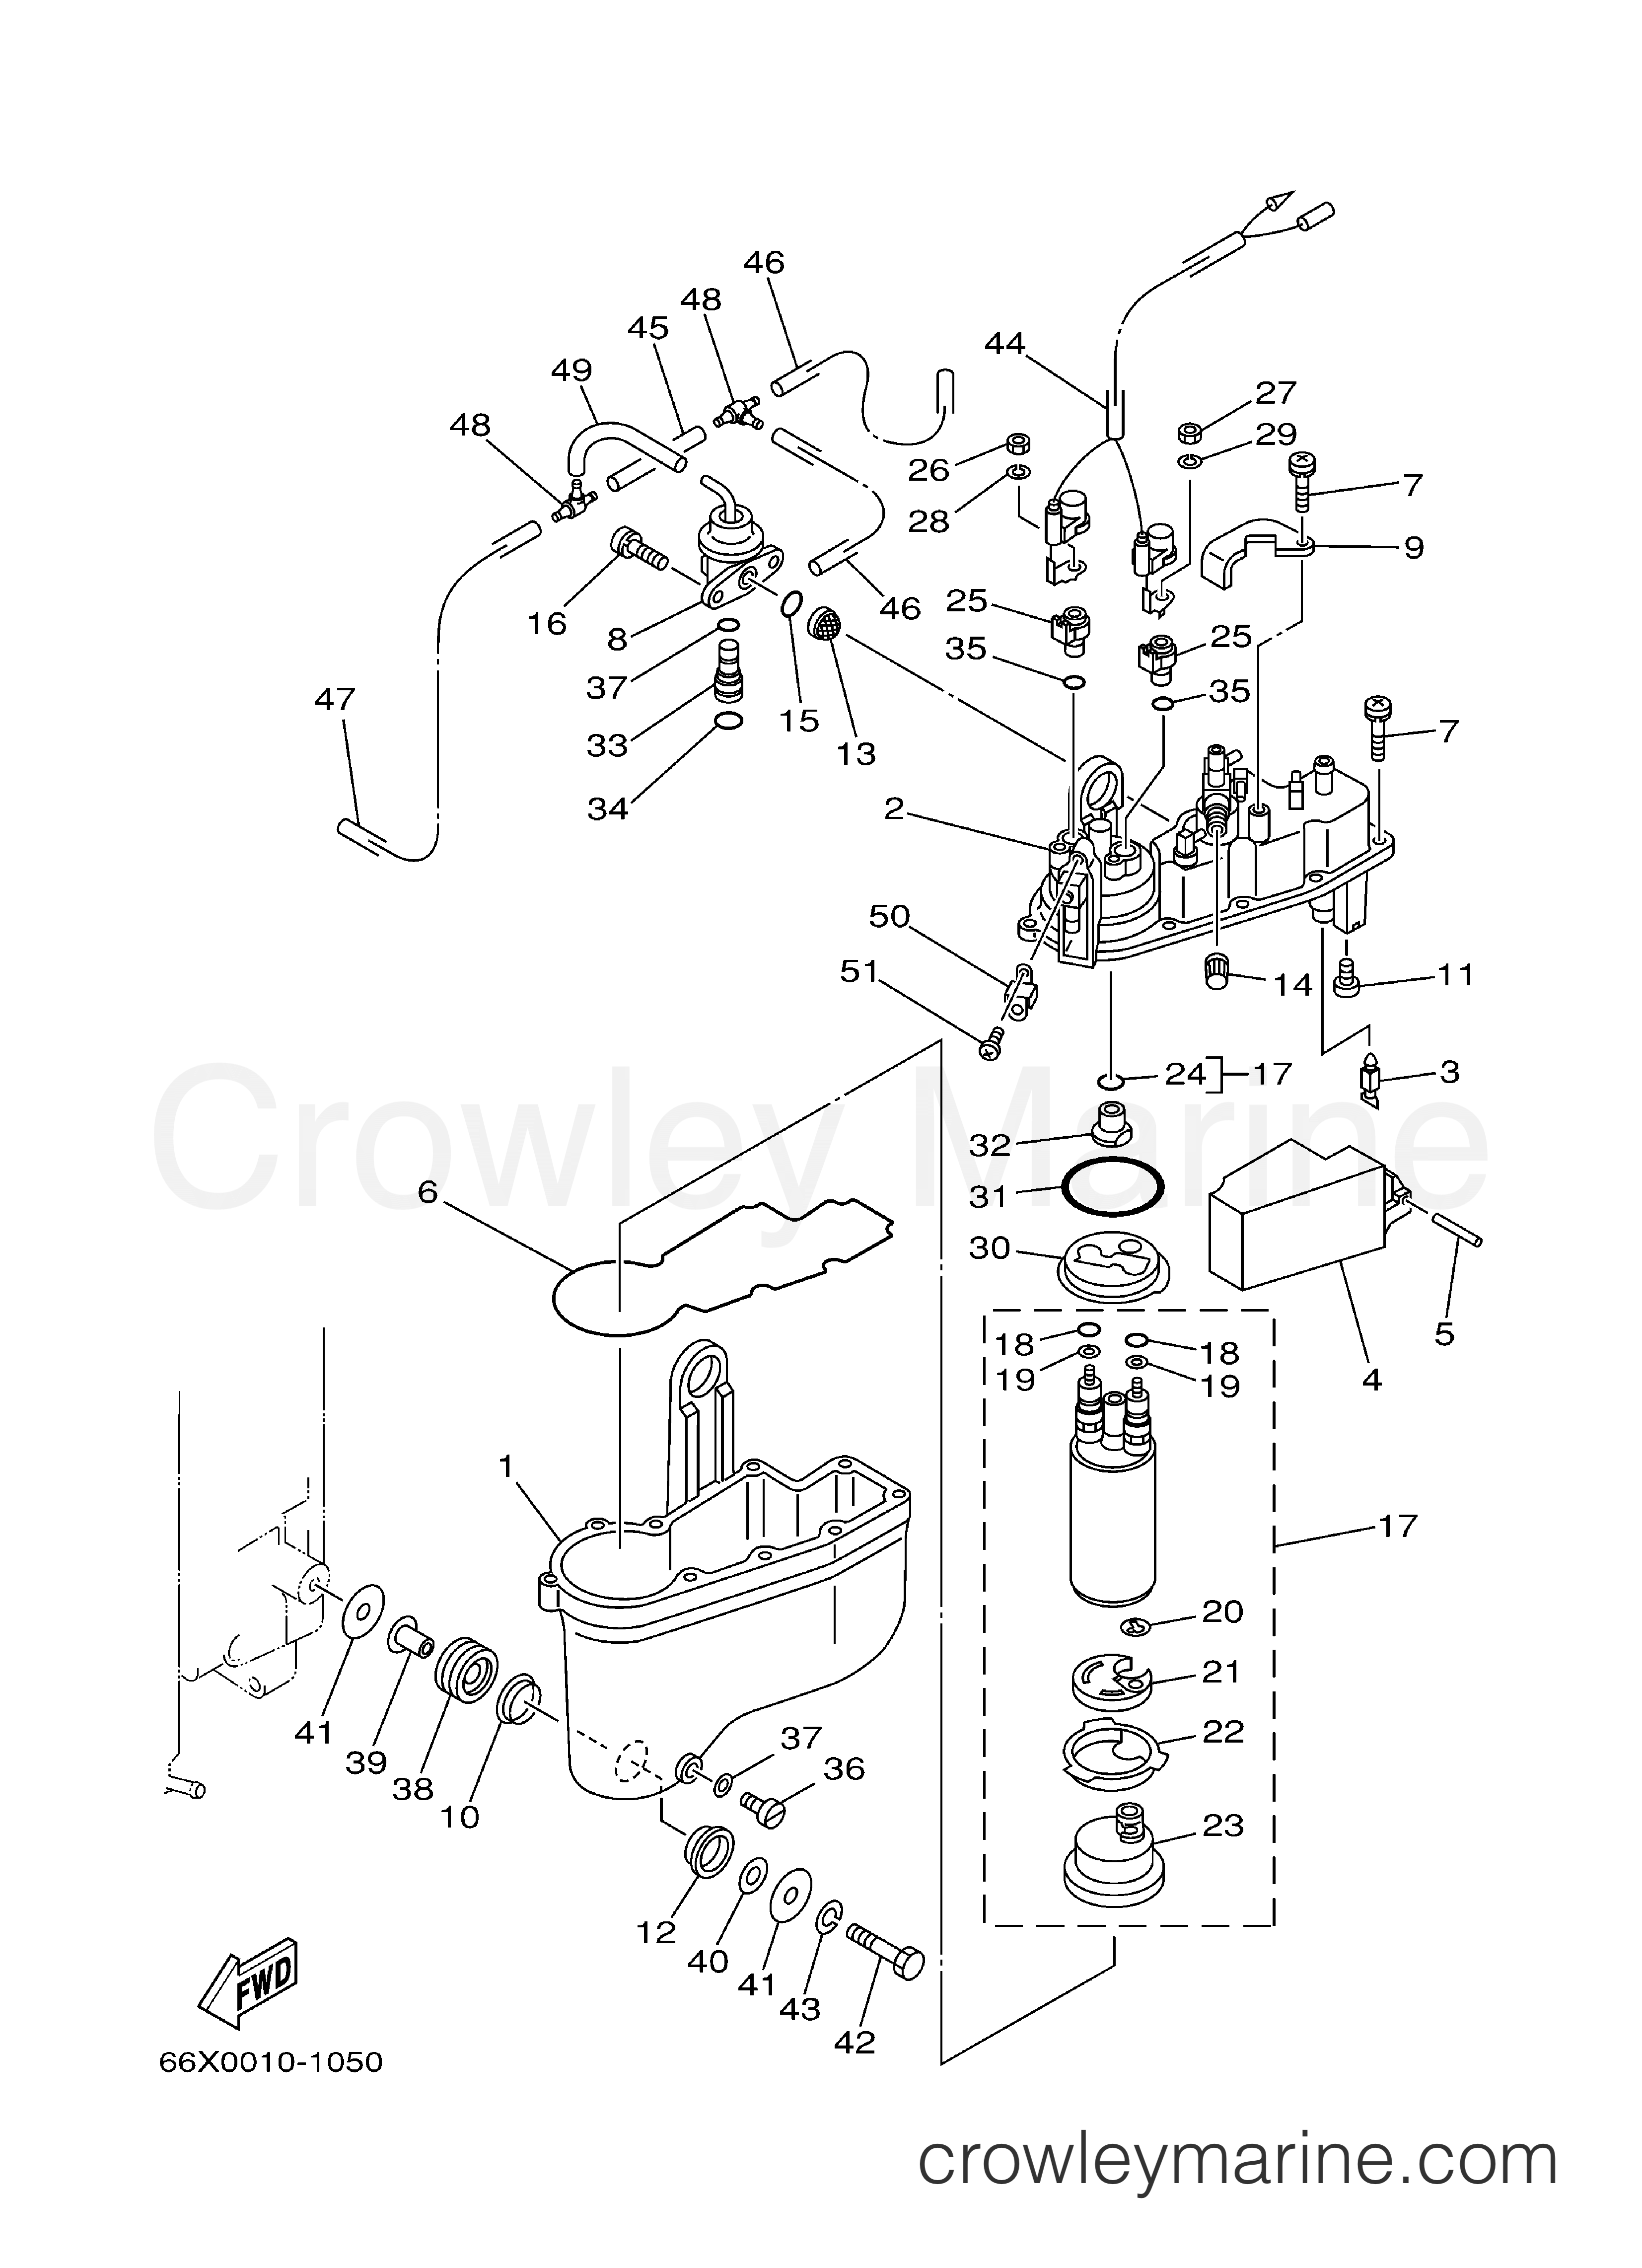 Yamaha Ox66 200 Wiring Diagram Schematics Diagrams Hpdi 2003 Grizzly 660 450 250 Weight Outboard